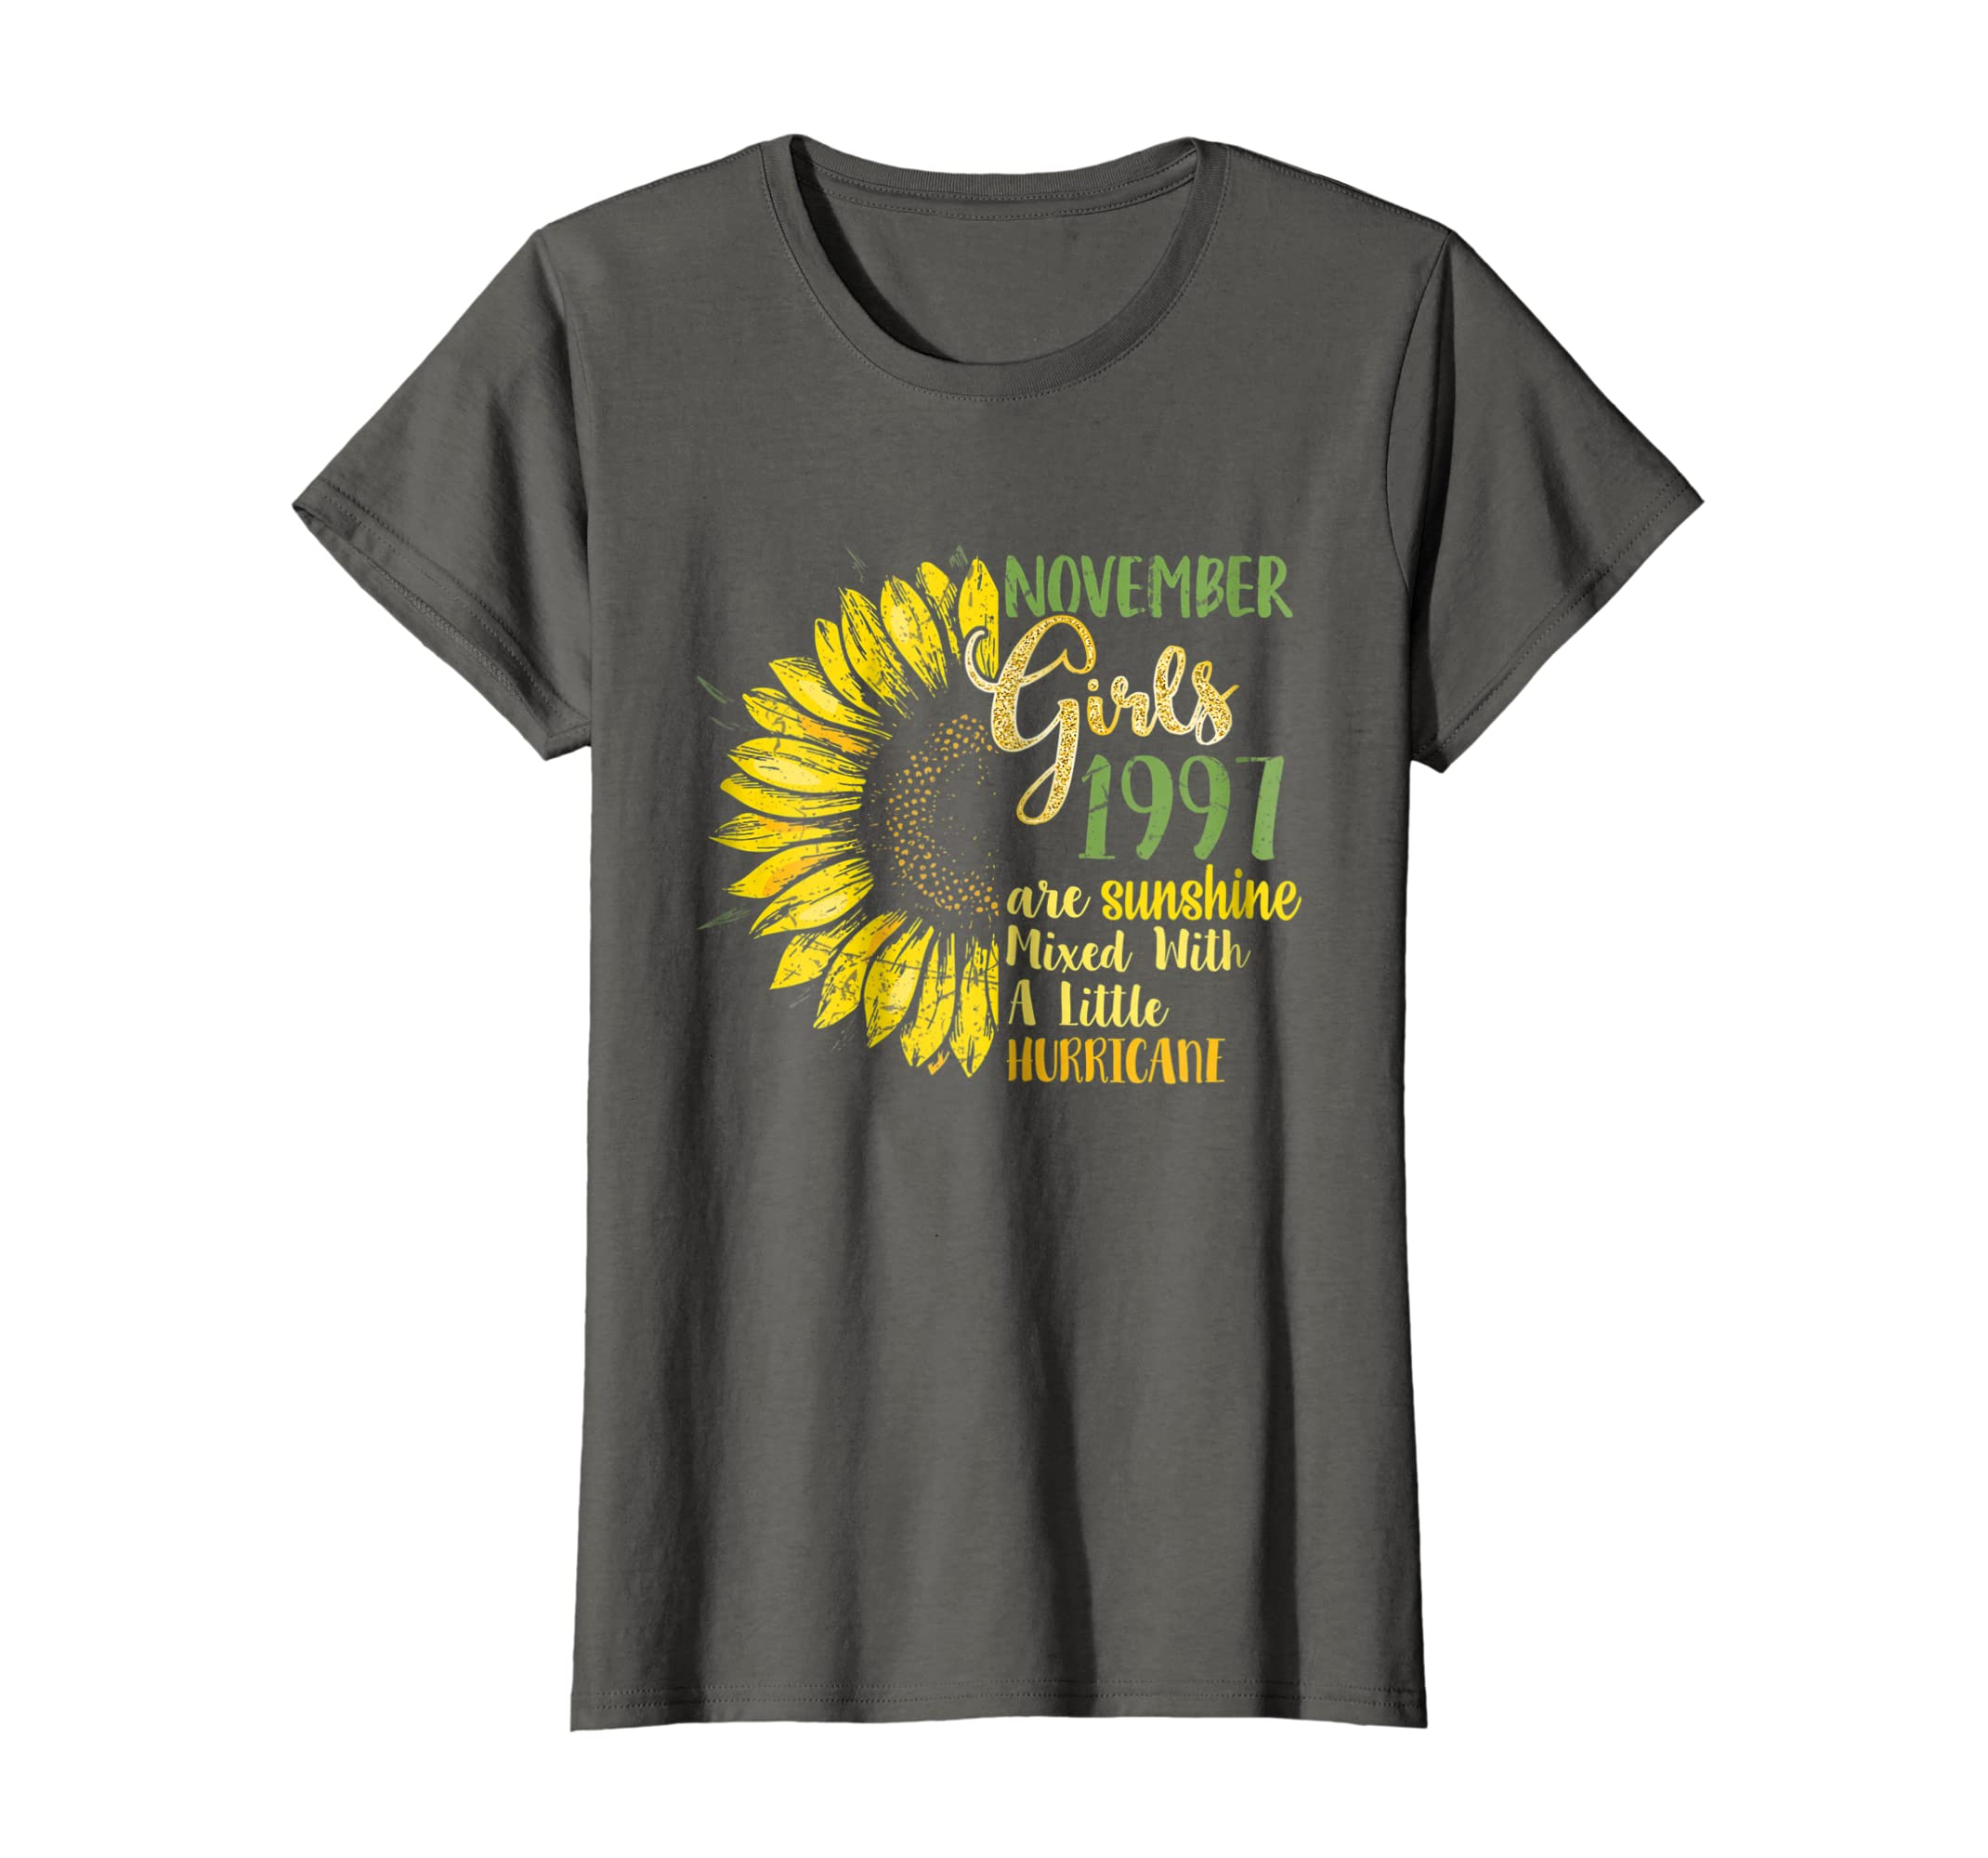 Amazon November Girls 1997 Shirt 21st Birthday Gifts Being Awesome Clothing